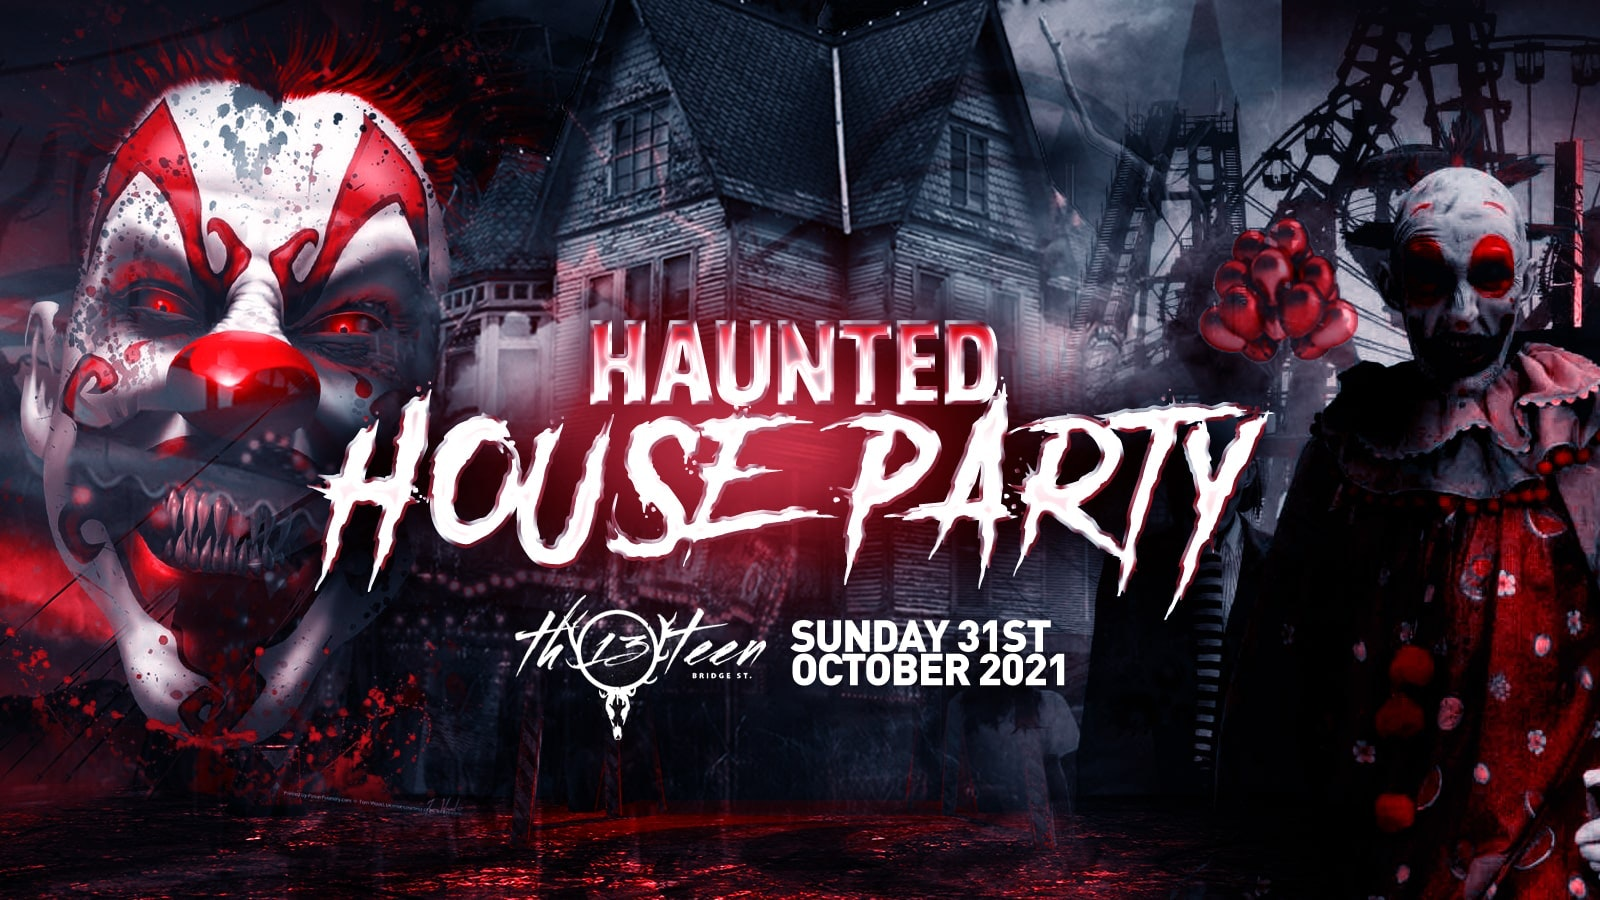 The Haunted House Party | Surrey / Guildford Halloween 2021 – First 100 Tickets £1